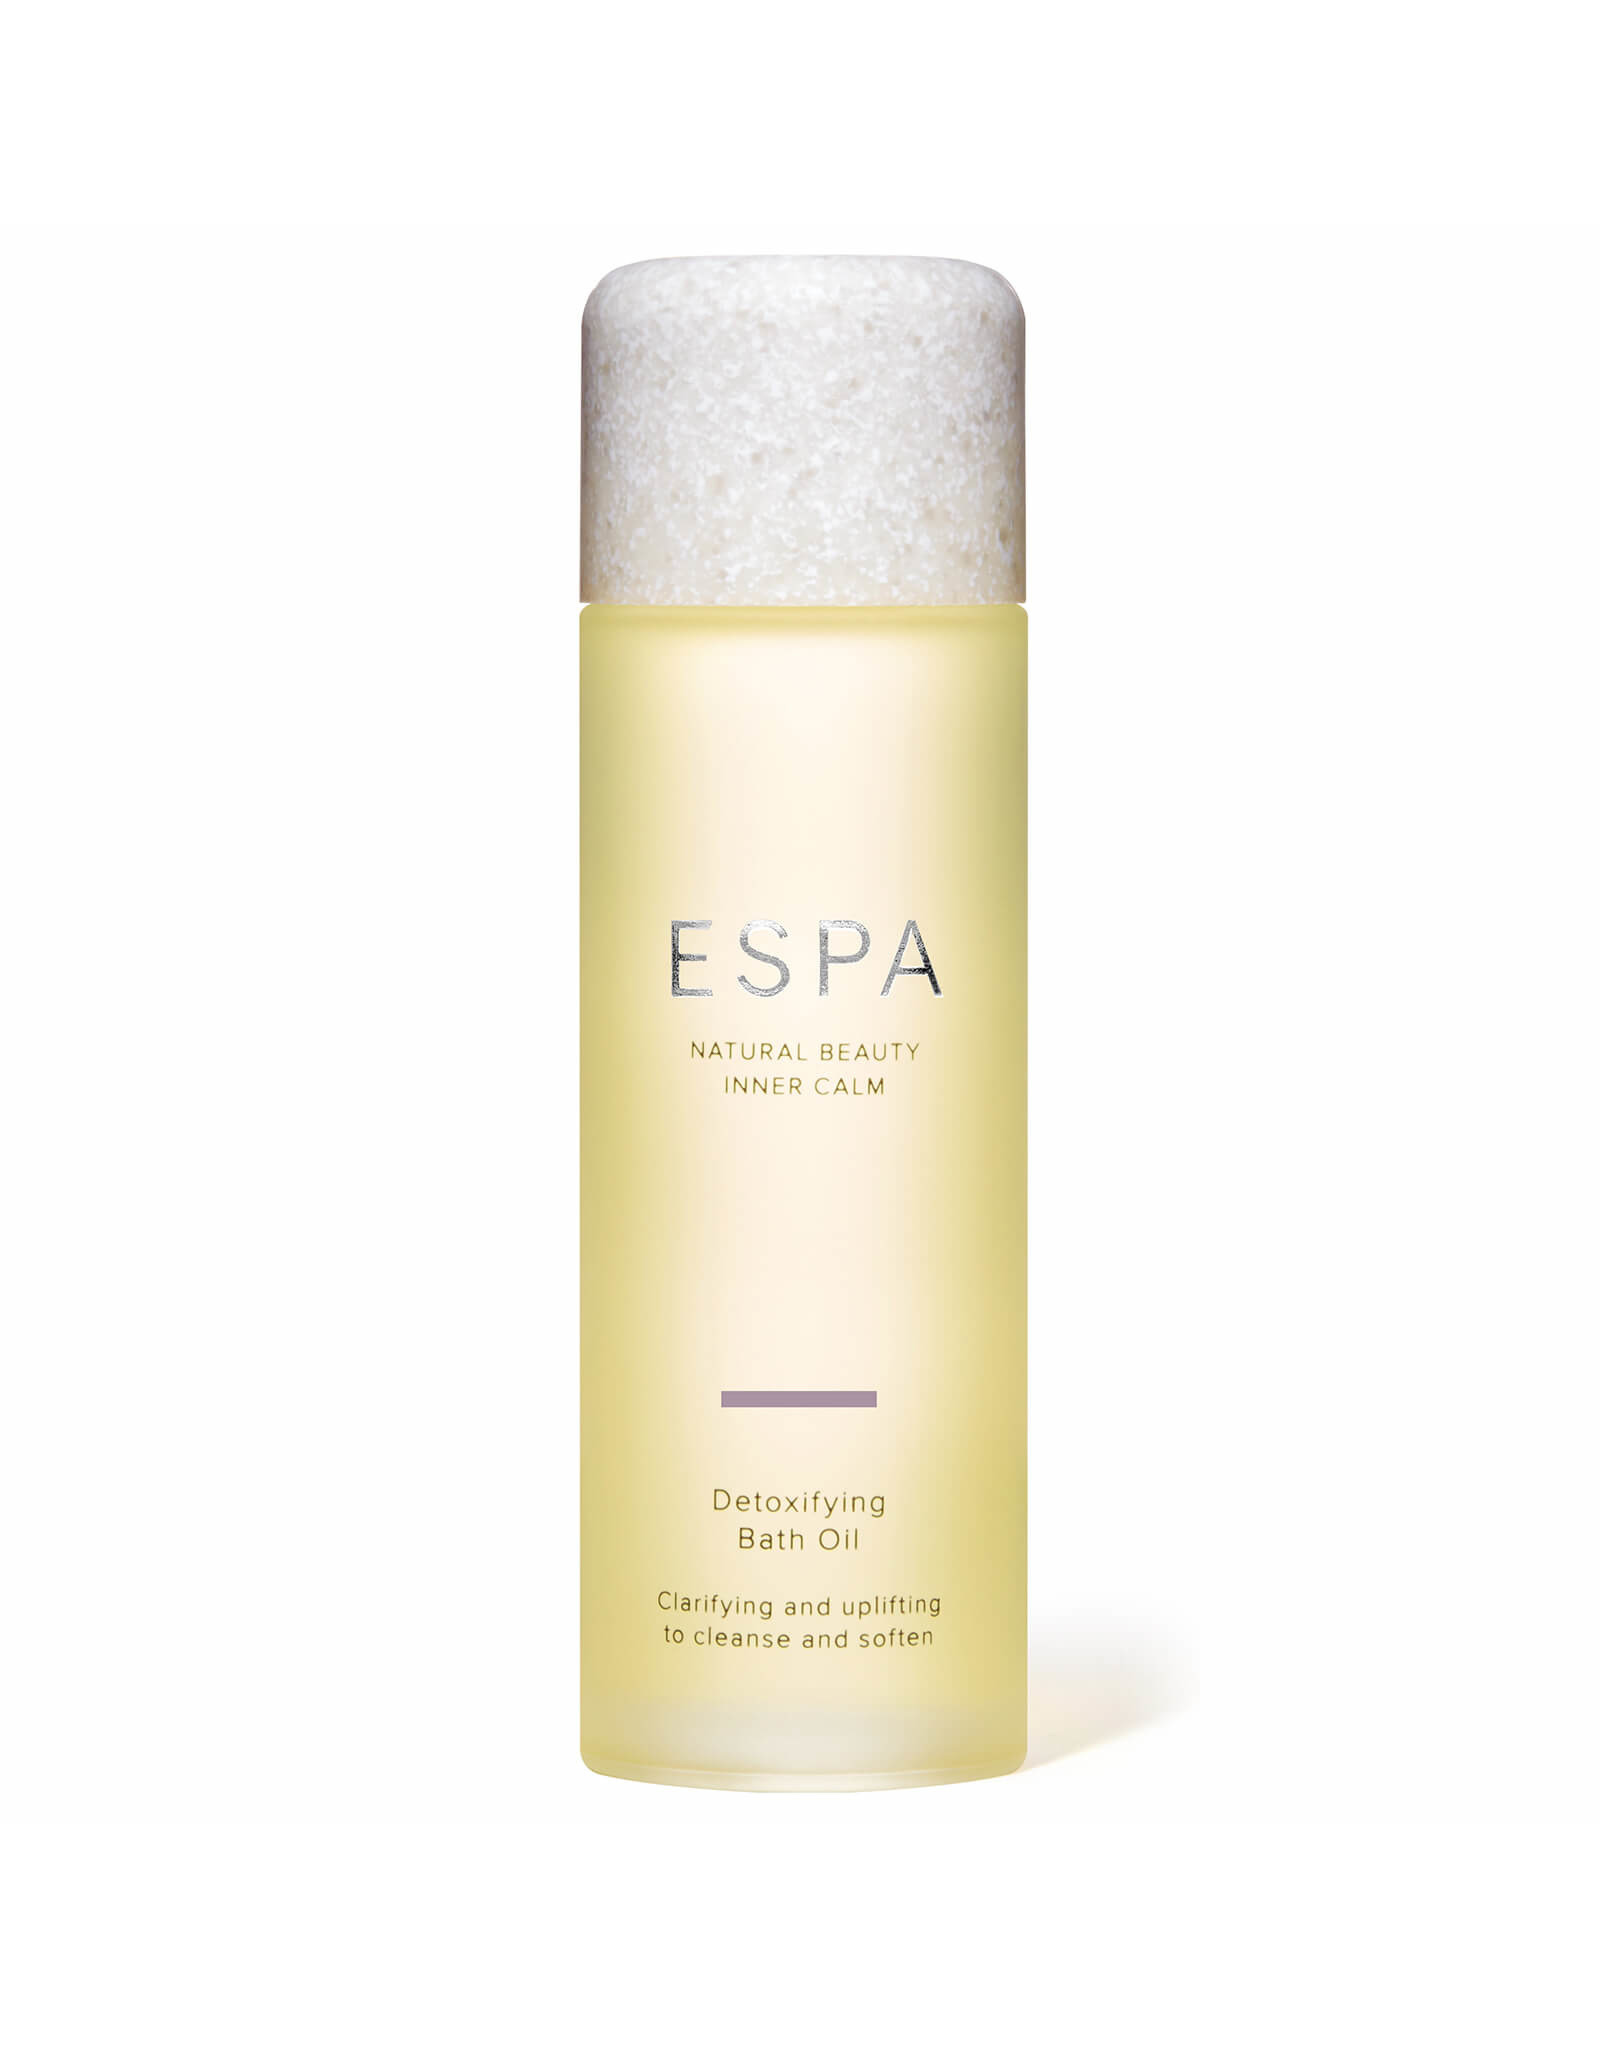 ESPA Detoxifying Bath Oil